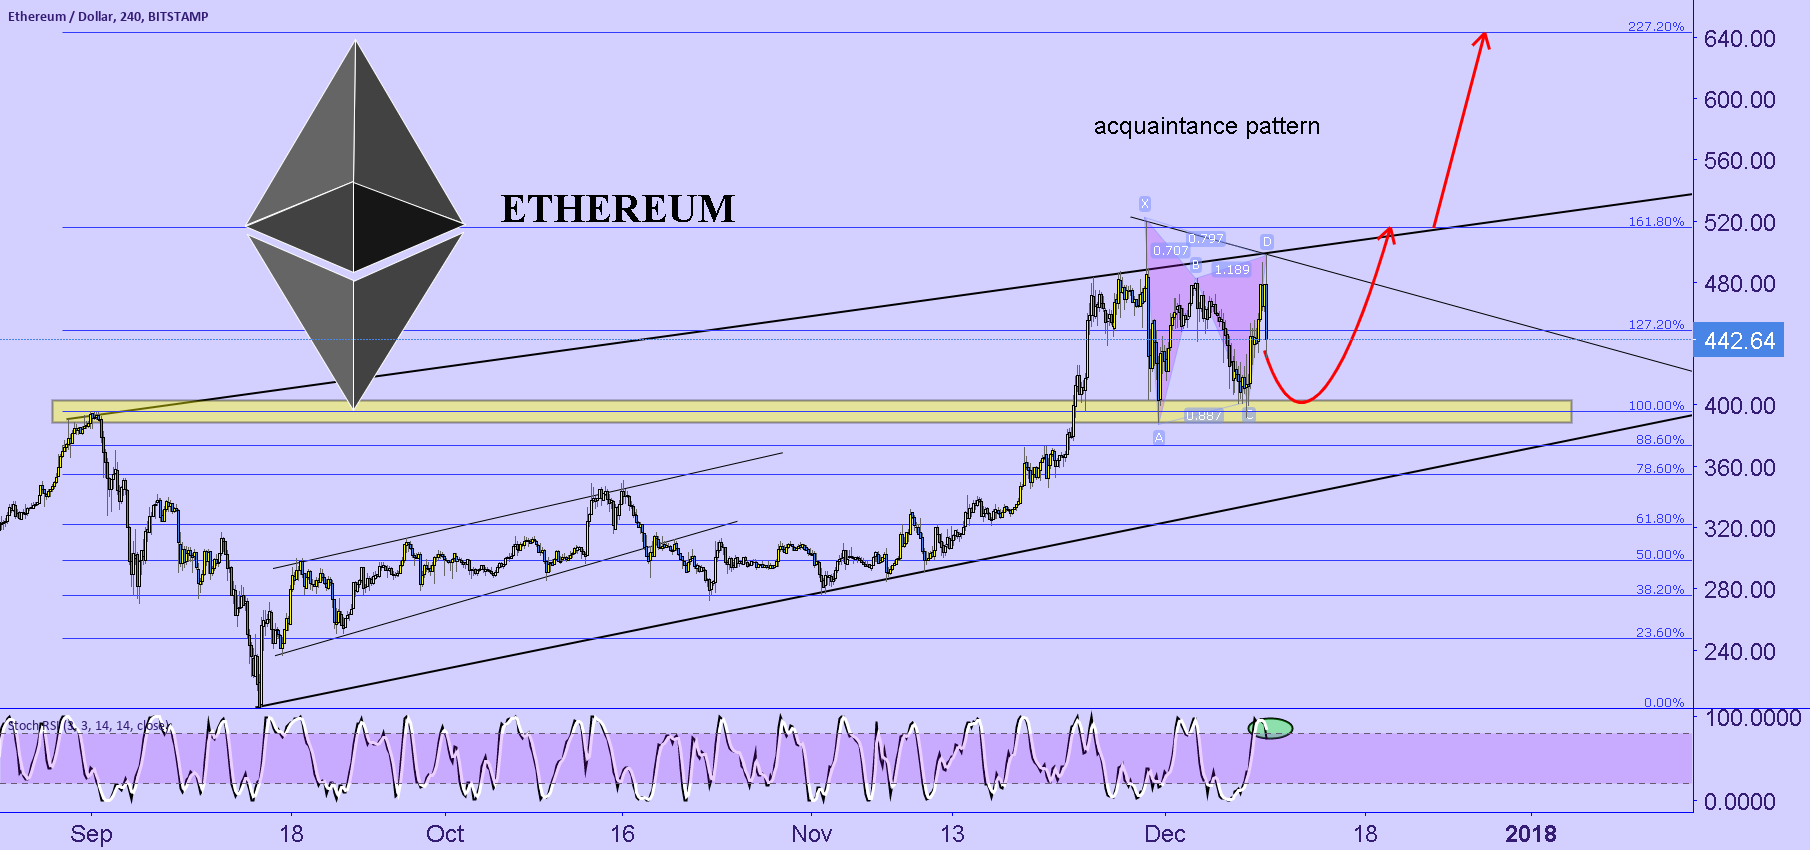 ETH have seen this pattern.